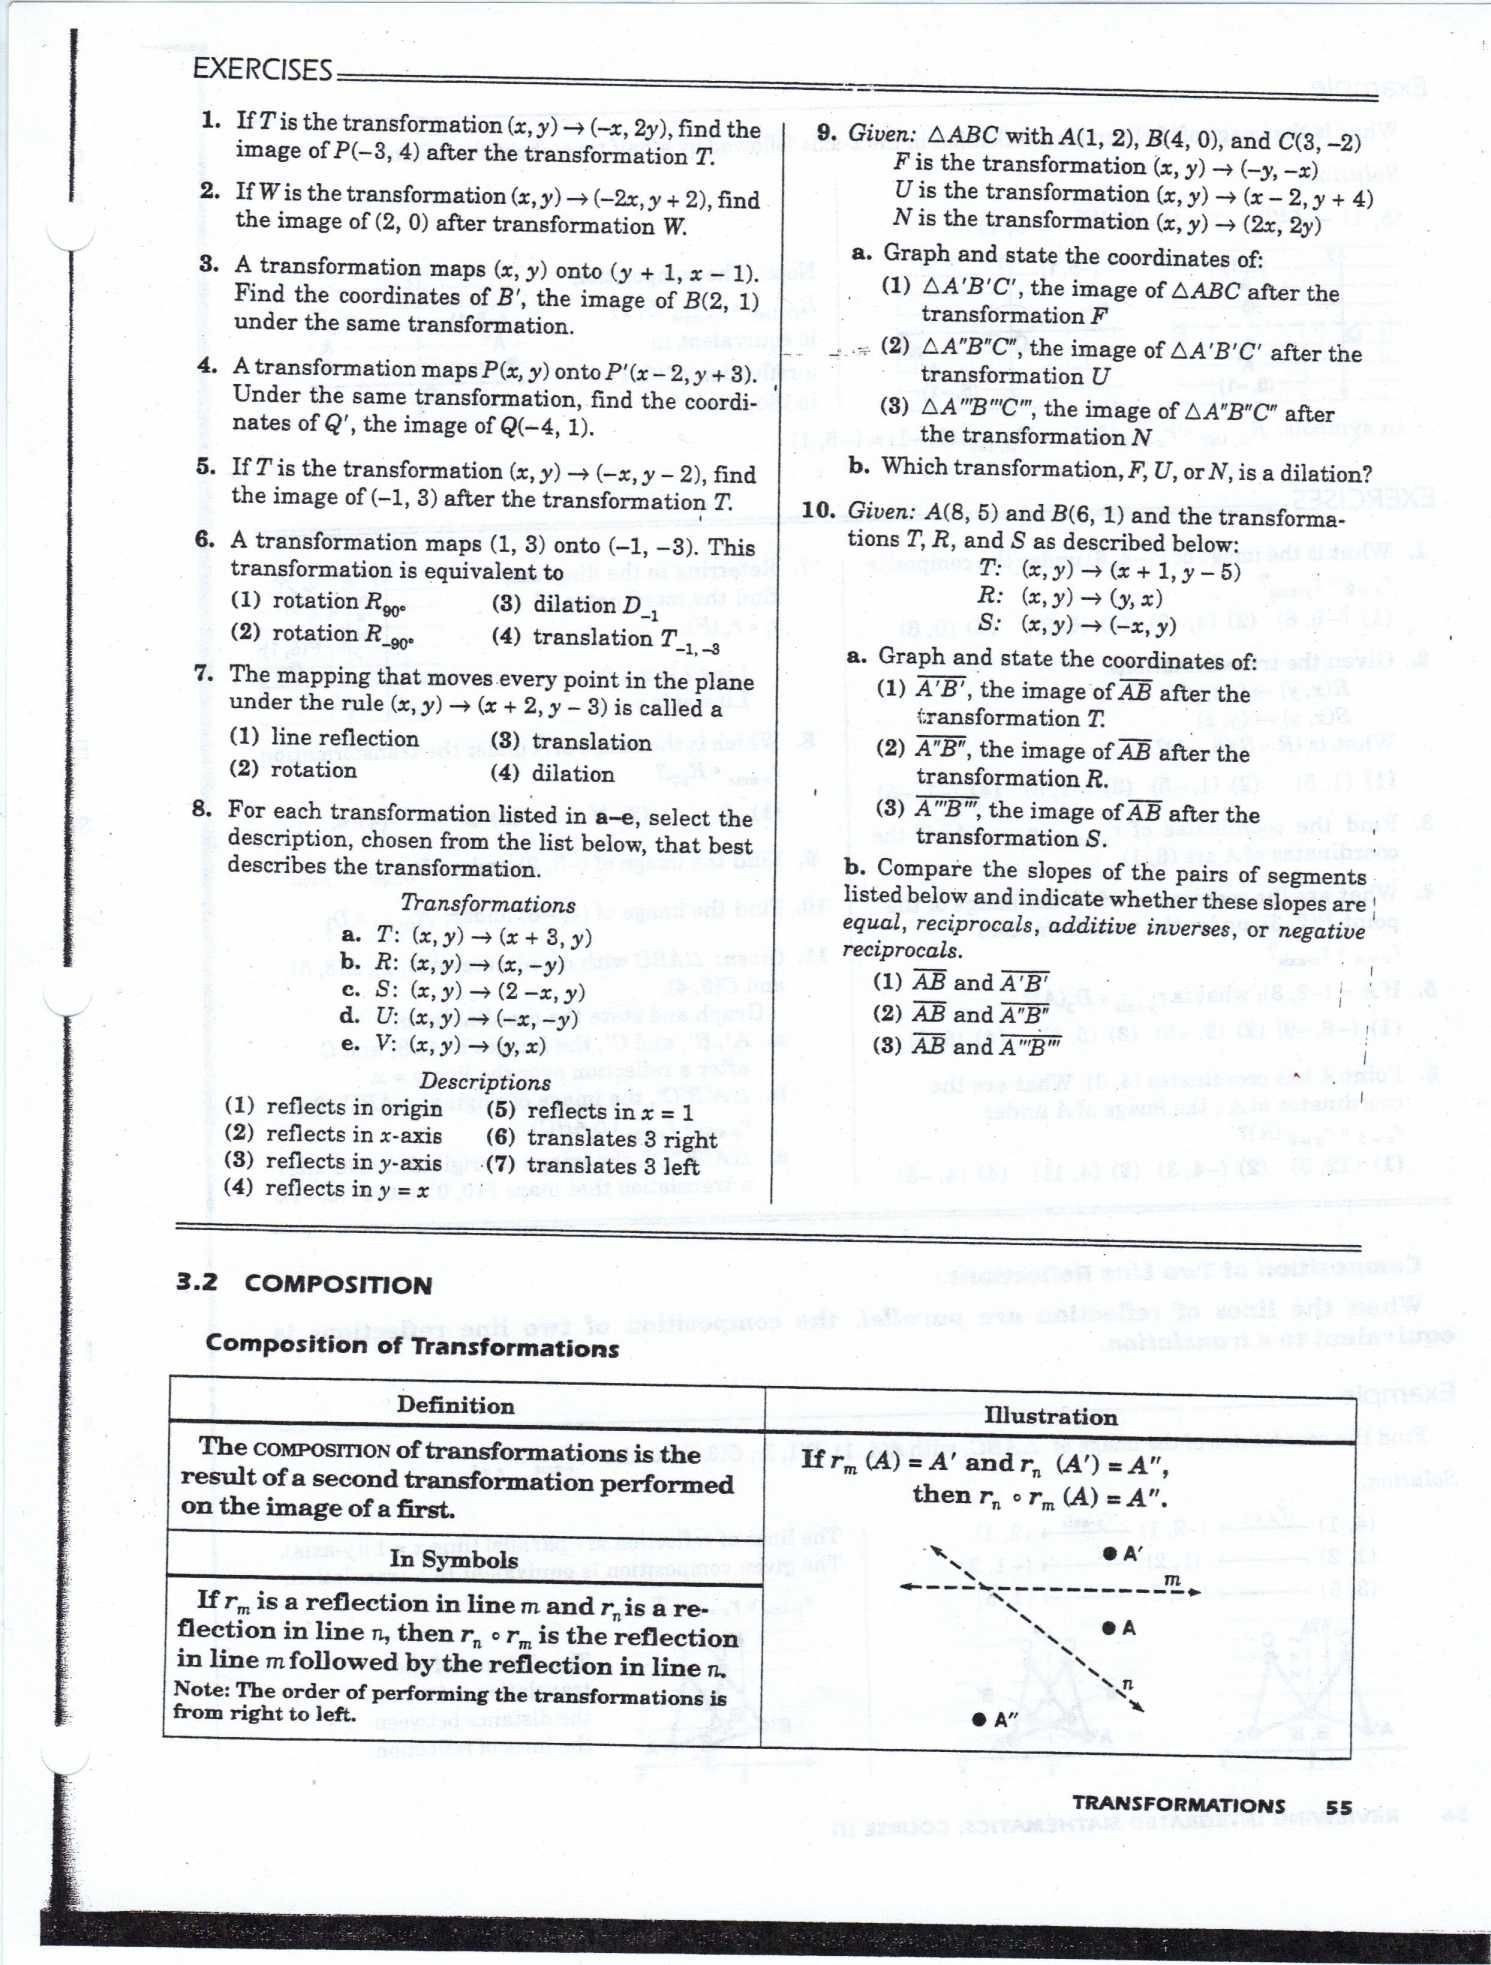 Composition Of Transformations Worksheet Pin On Printable Blank Worksheet Template